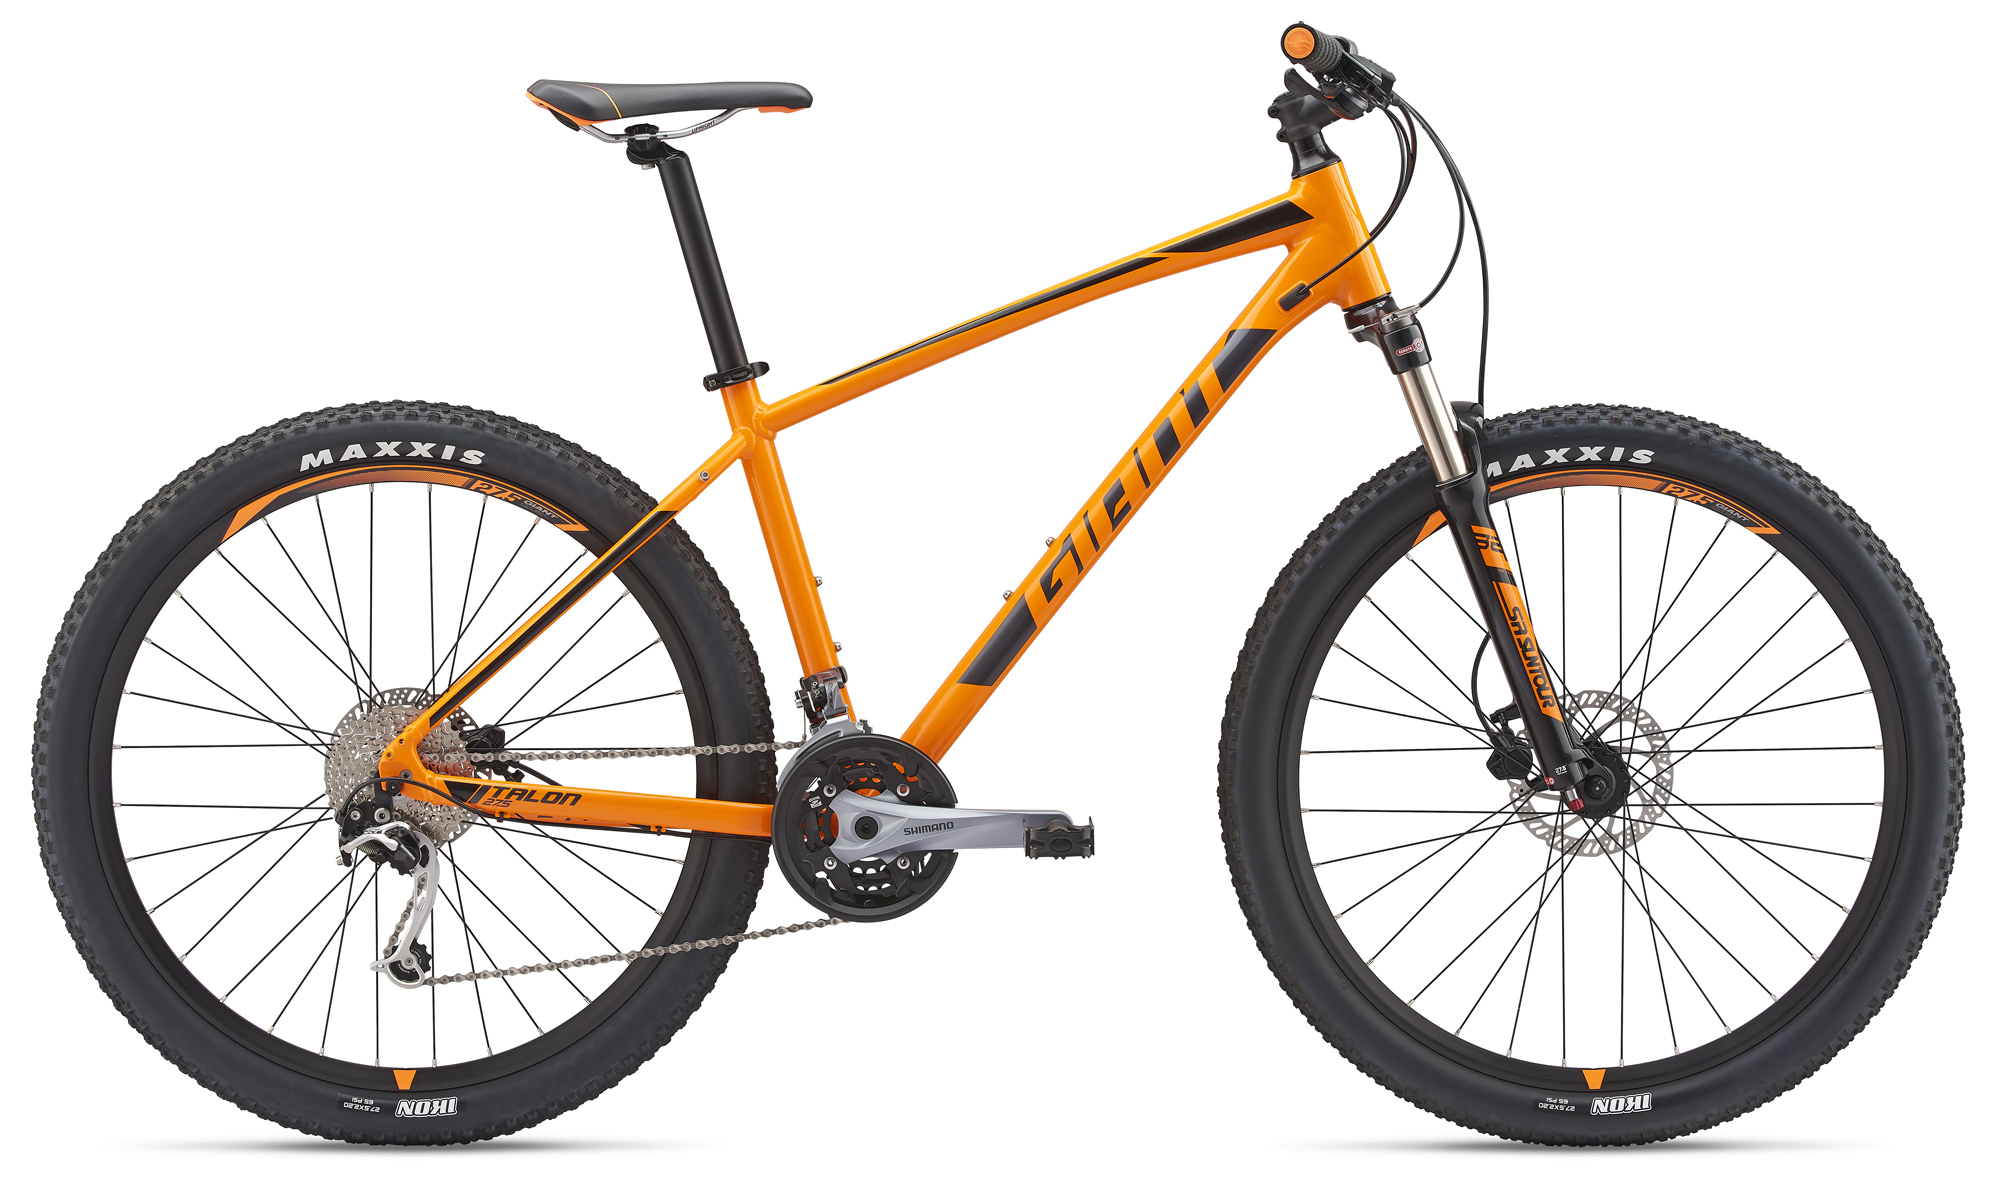 Велосипед Giant Talon 2 GE 2019 велосипед giant talon 29er 2 blk 2014